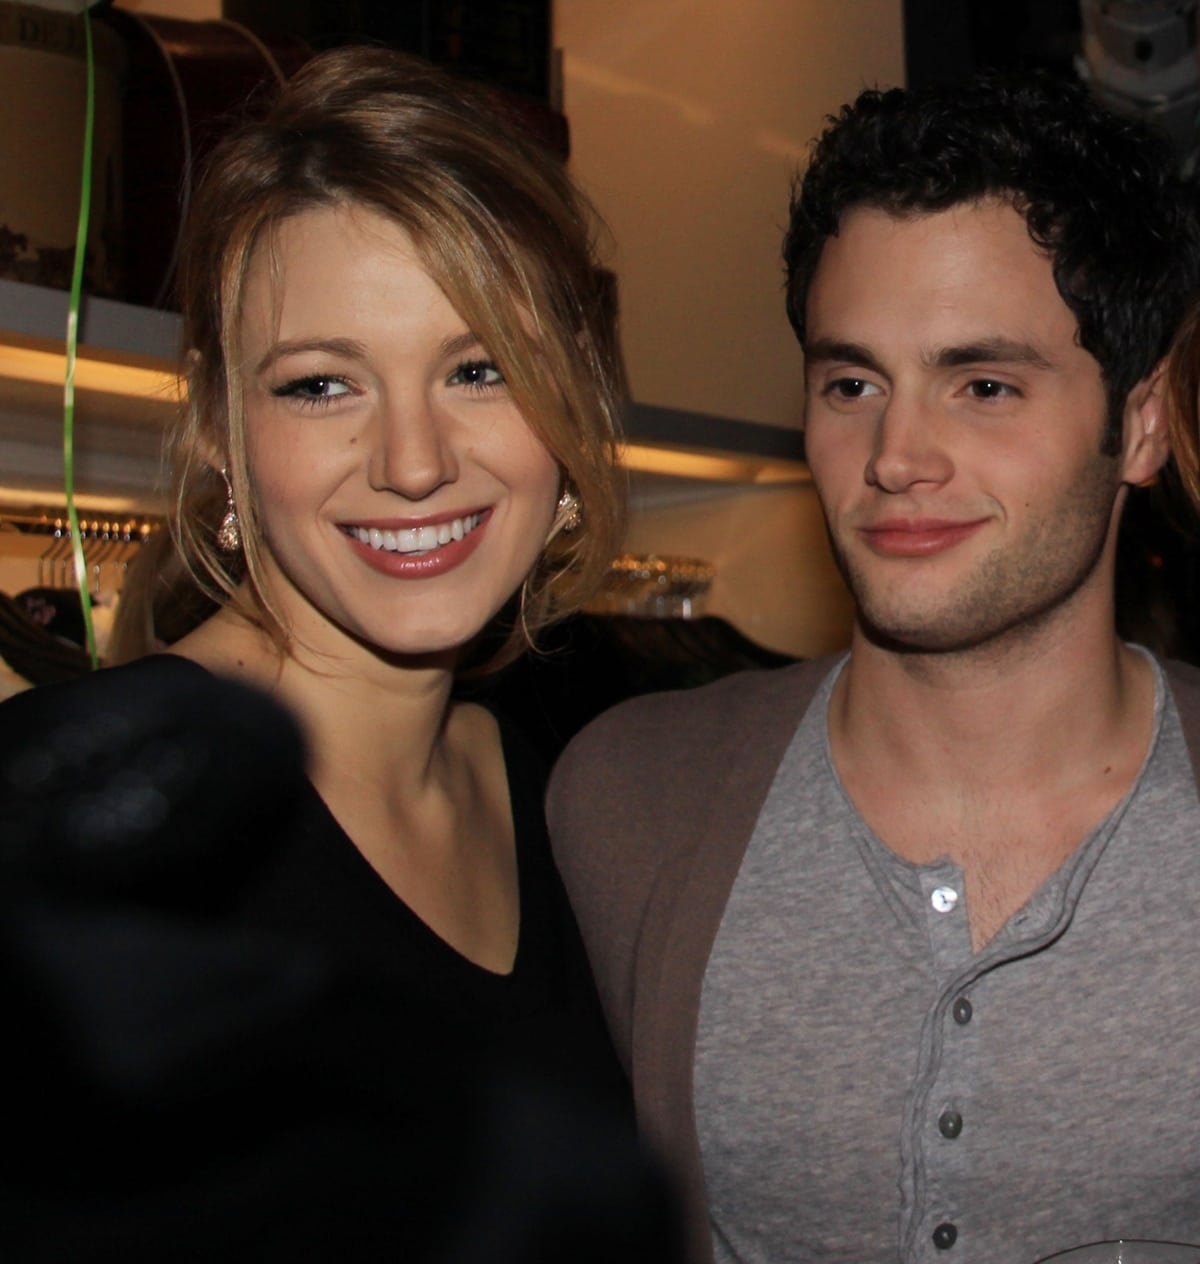 Blake Lively and her boyfriend Penn Badgley at the grand opening of Juicy Couture NYC's flagship store